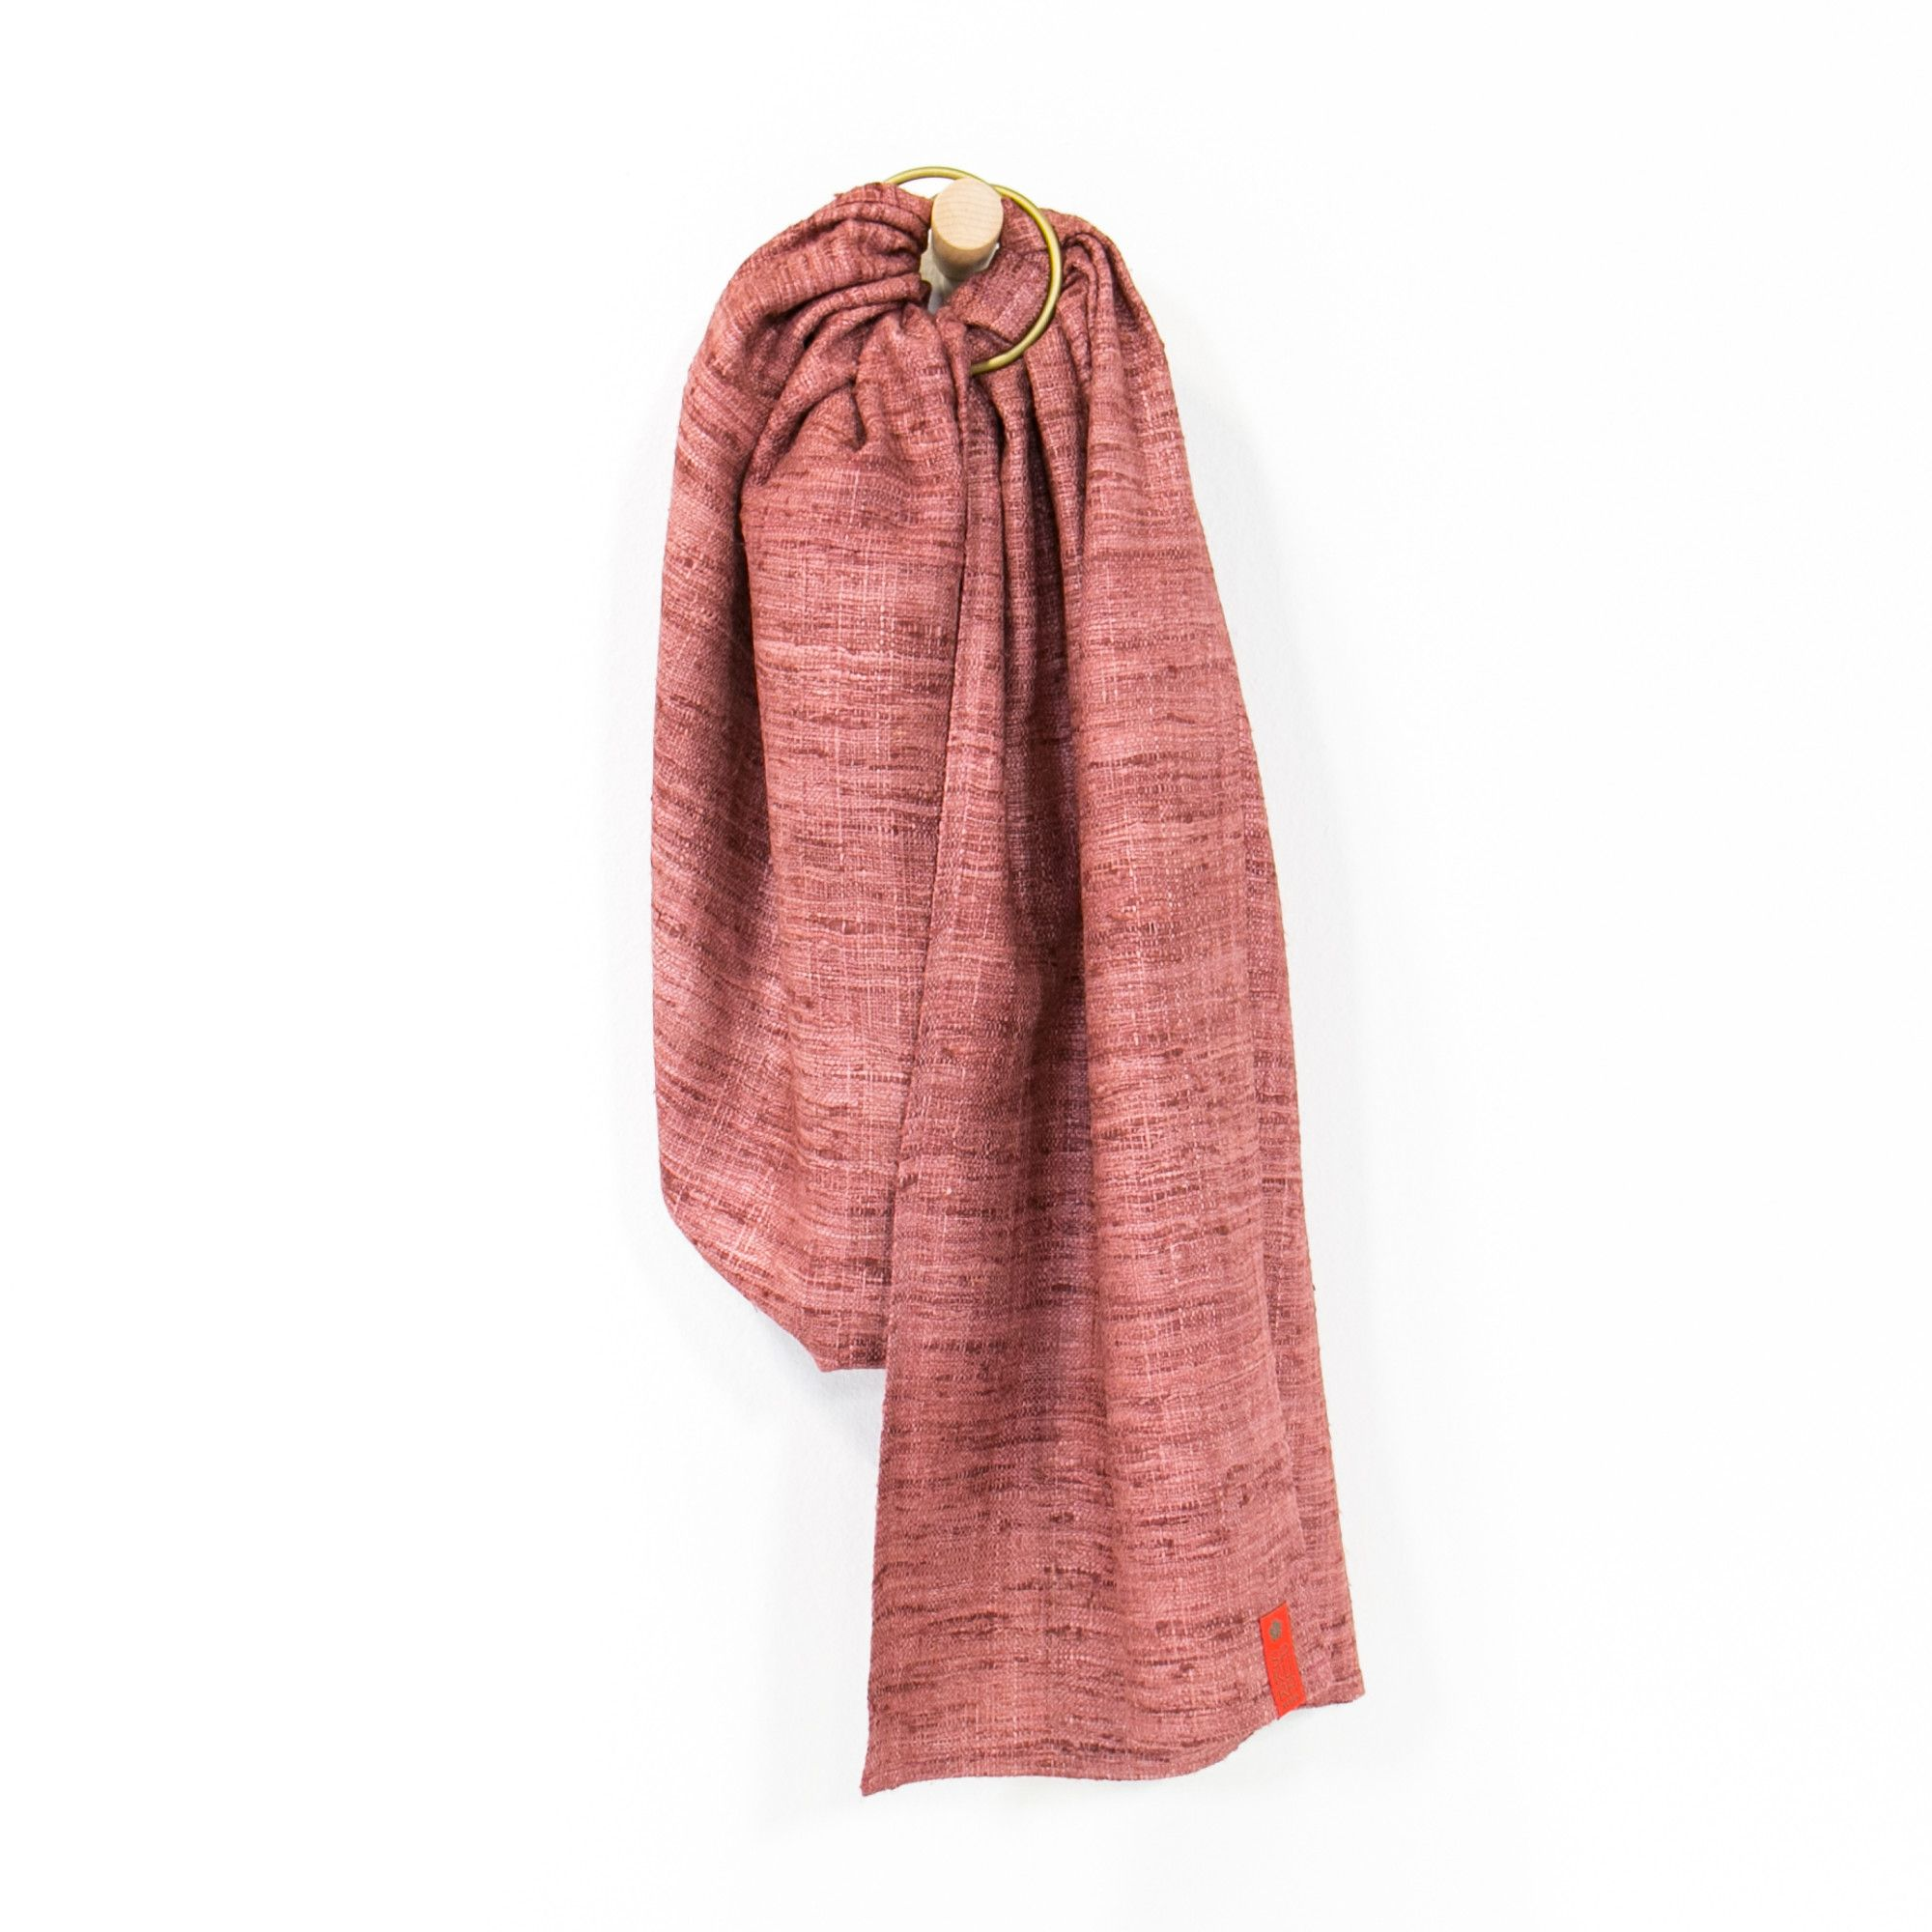 e66f3310a04 Sakura Bloom Rosewood - Raw silk fibers spun and then handloomed to create  a cloth full of charm and texture